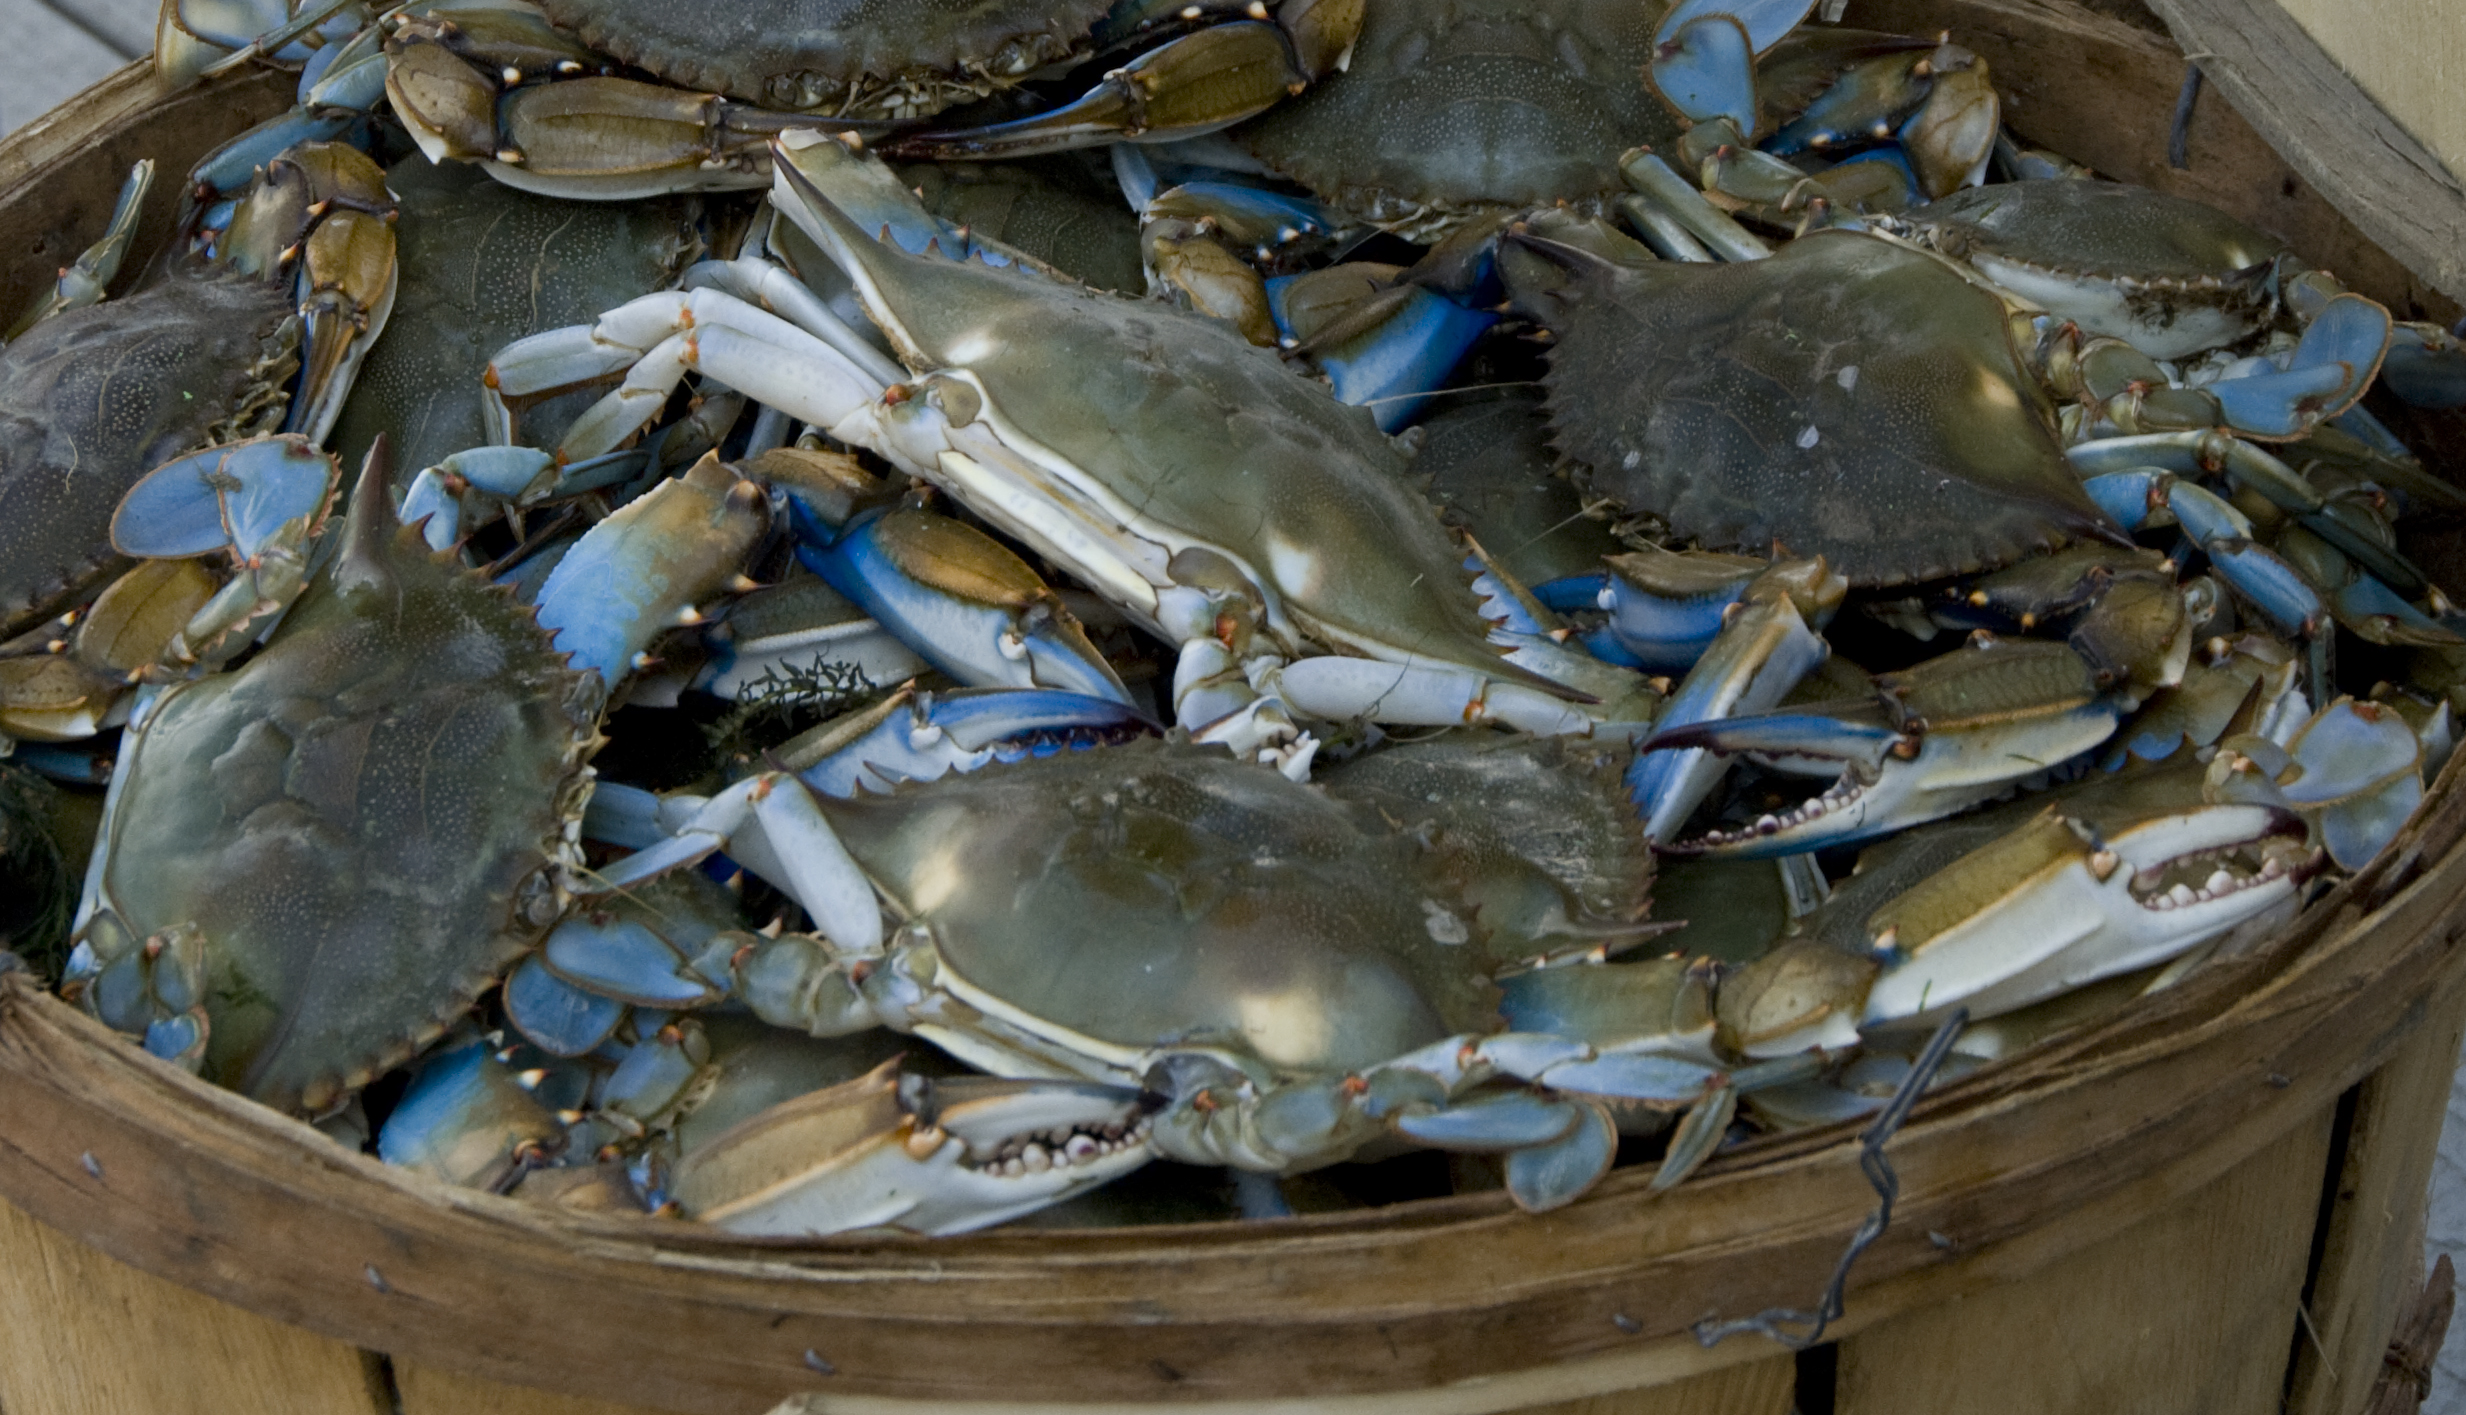 City Tap House is offering unlimited Maryland blue crabs, jambalaya rice ad corn on the cob for $35 on Labor Day. (Photo: St. Mary's County Division of Tourism)